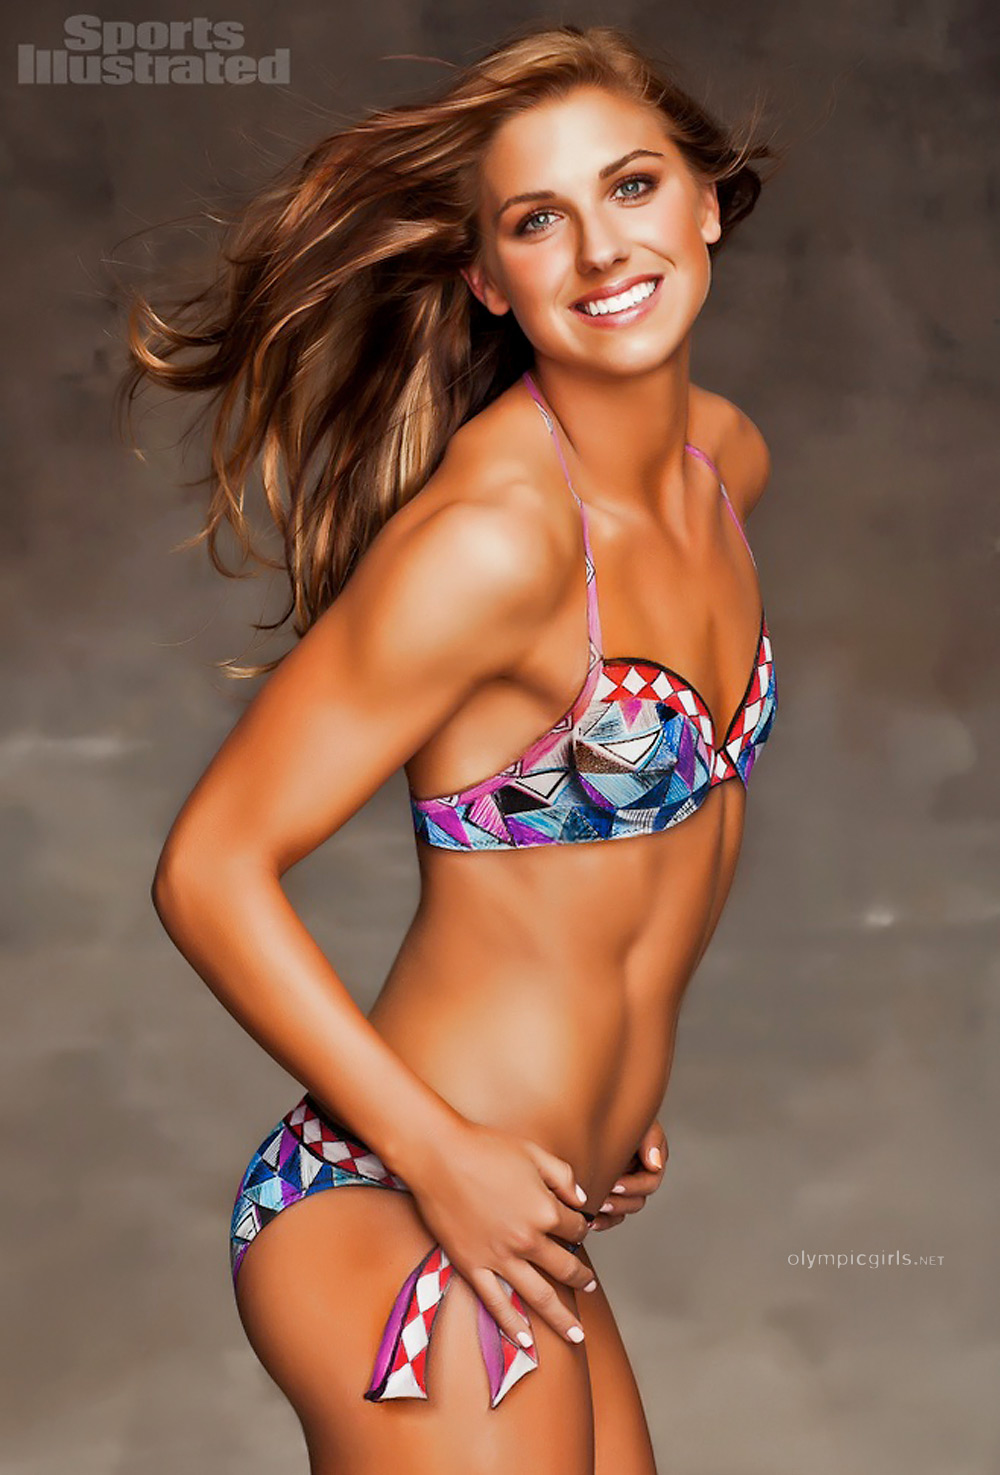 Sensual Gratification: Alex Morgan